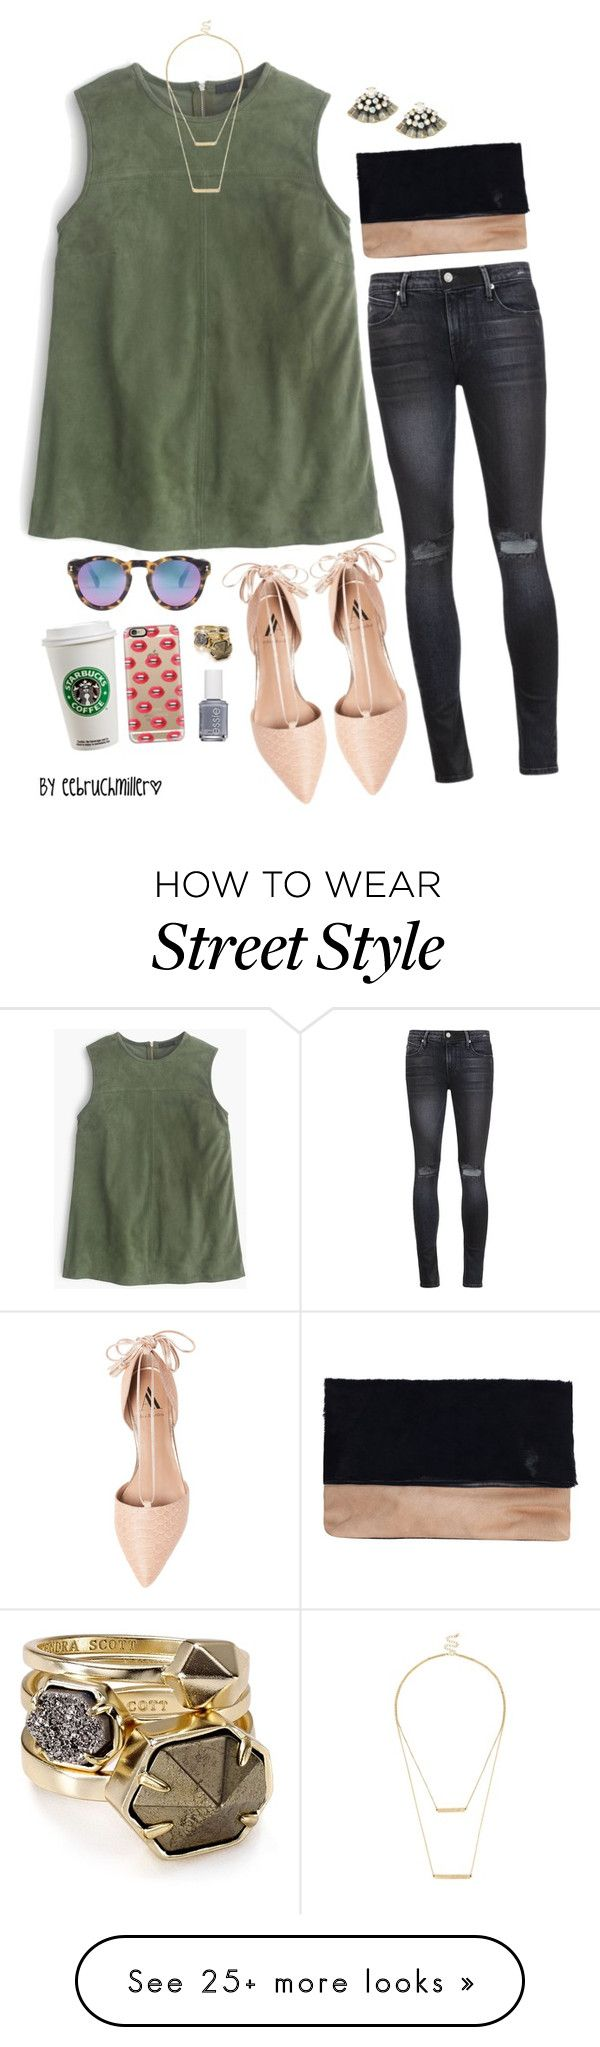 """Street Style ft. Flats"" by eebruchmiller on Polyvore featuring RtA, J.Crew, Ava & Aiden, Casetify, Sole Society, Kendra Scott, Illesteva, Essie, women's clothing and women's fashion"